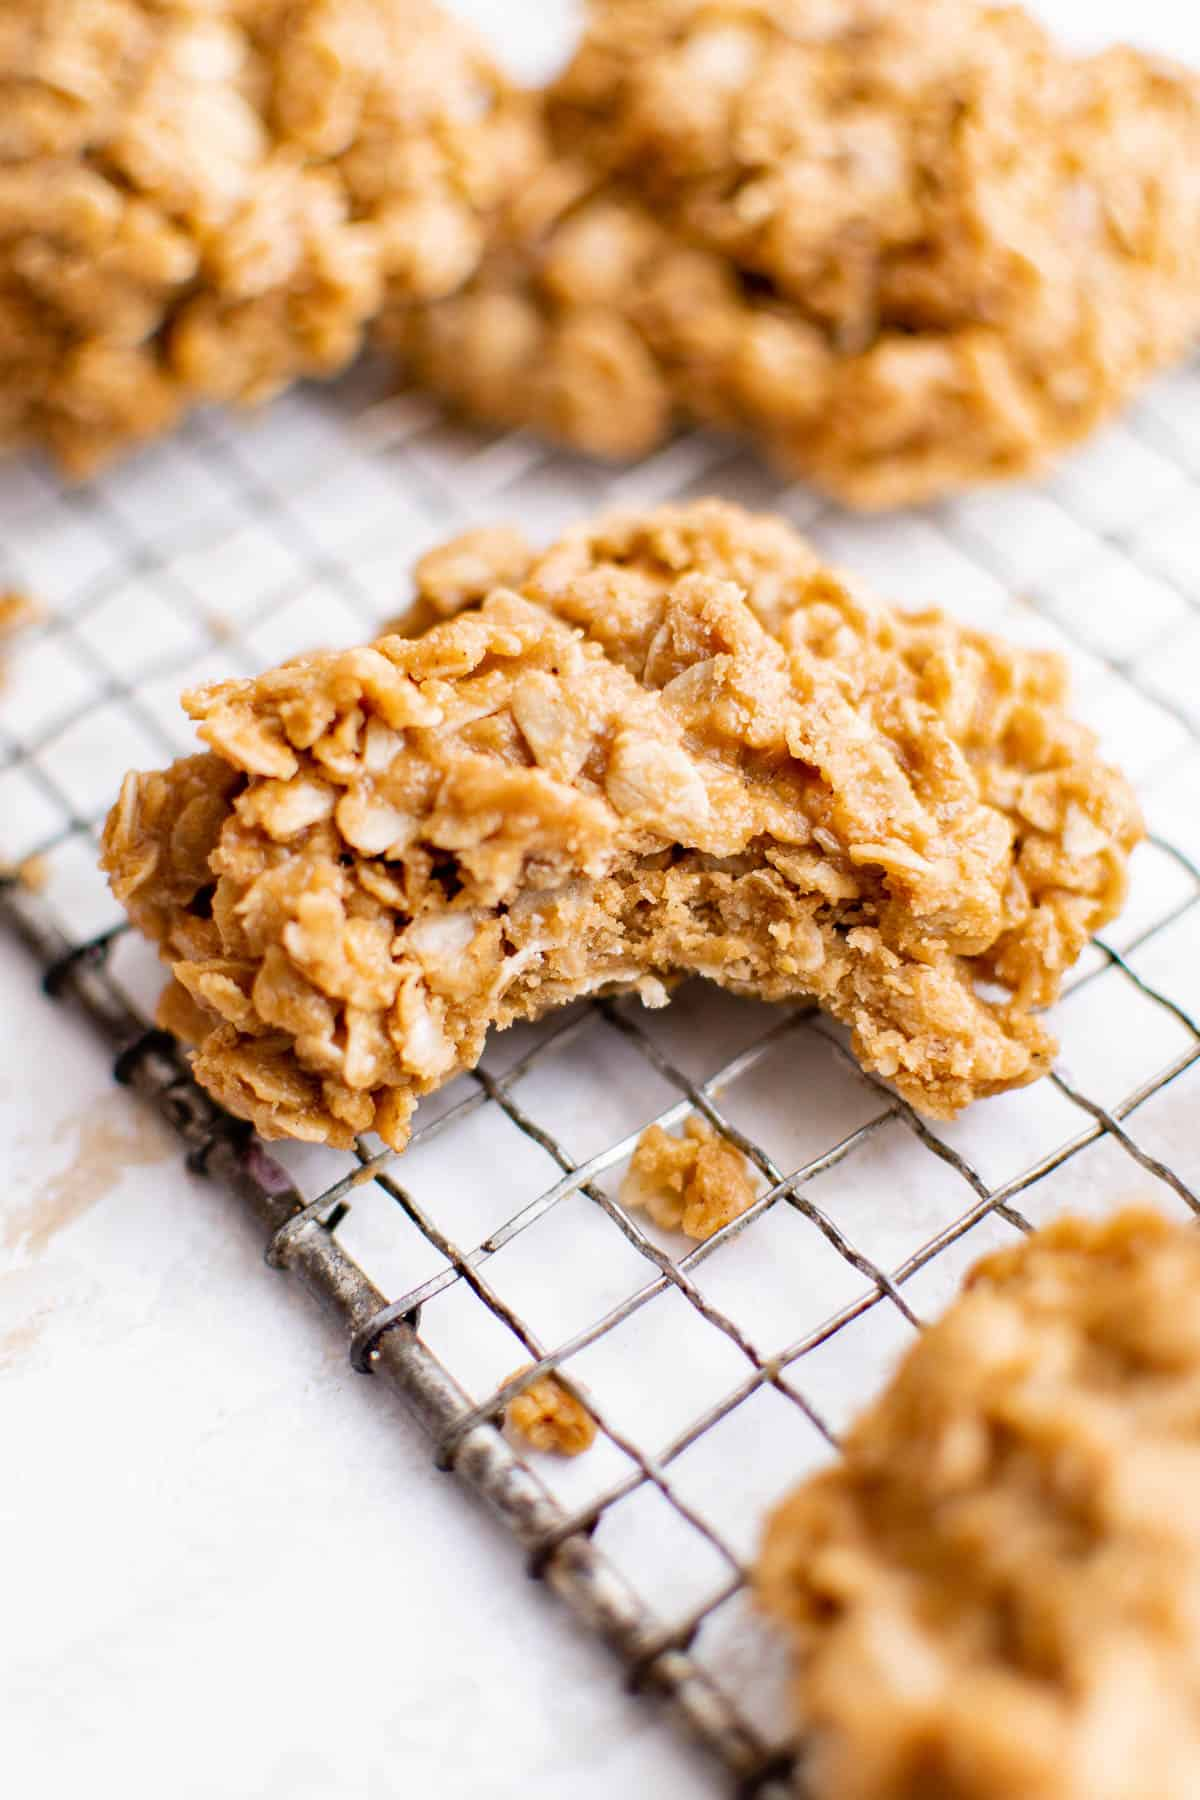 a cooling rack with peanut butter no bake cookies on it. One has a bite taken out of it